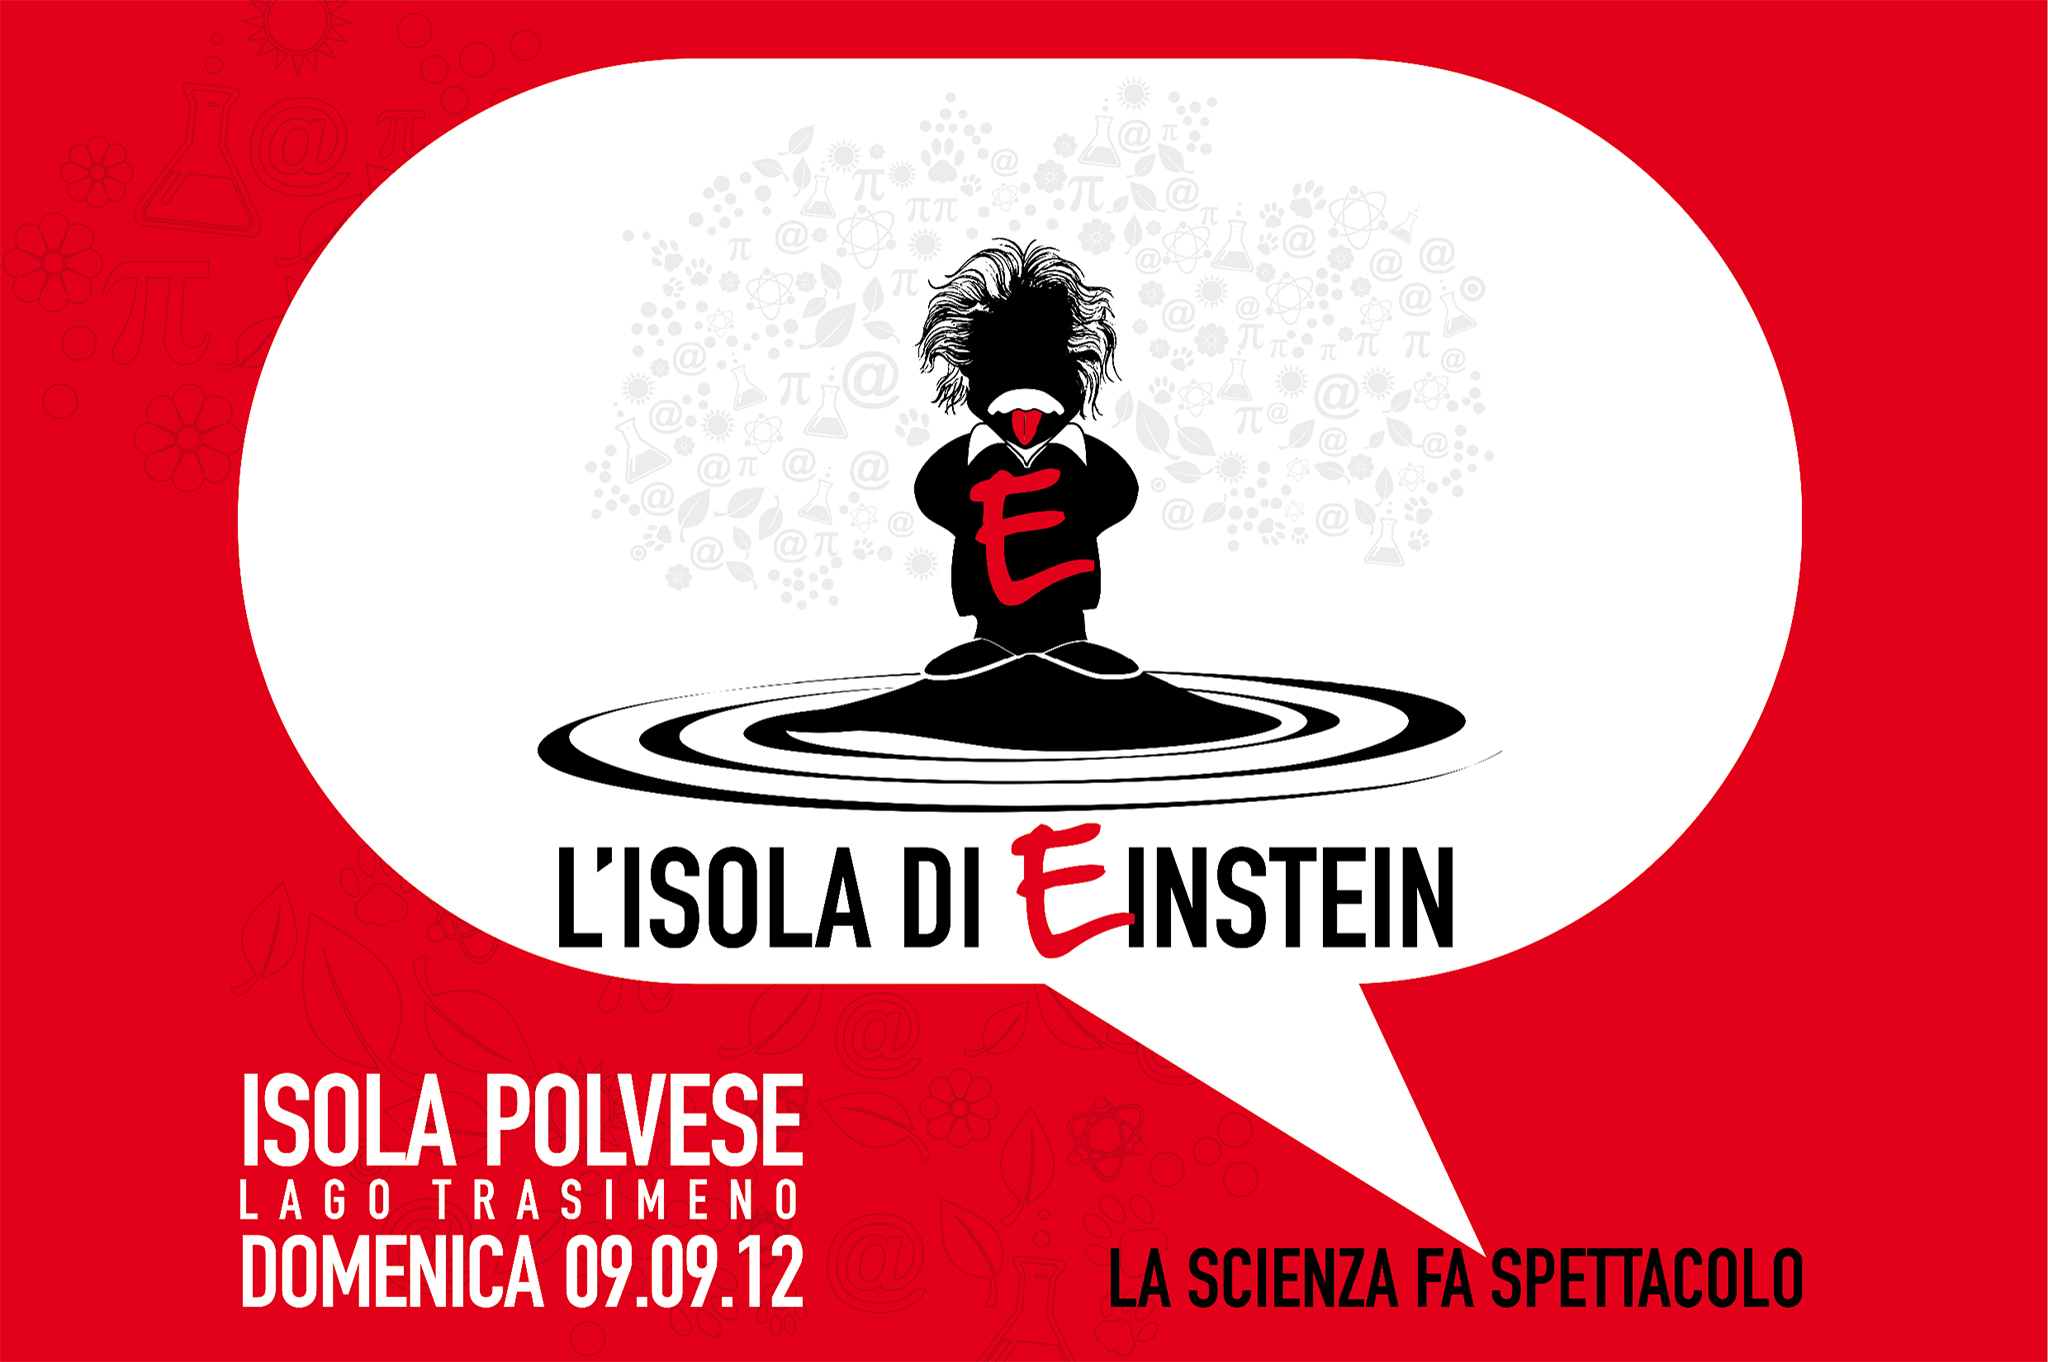 https://www.isoladieinstein.it/wp-content/uploads/2015/12/edizione2012-1.jpg